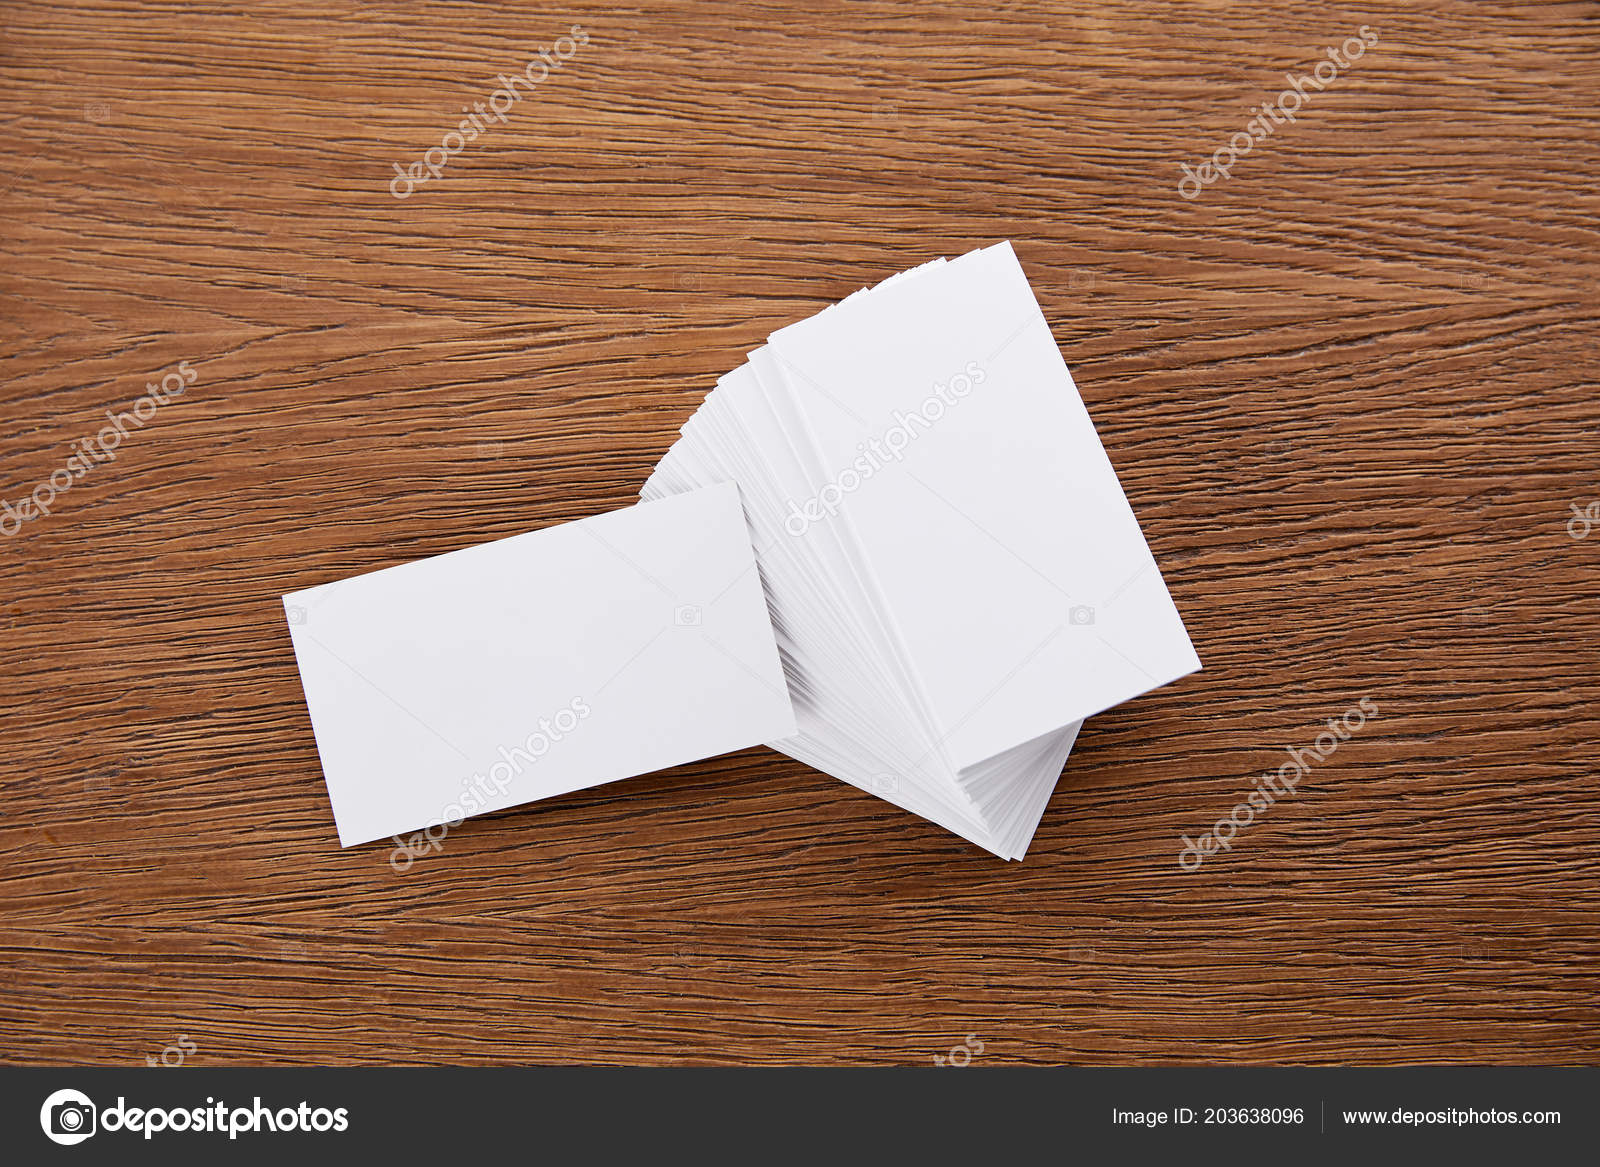 Close view stack blank business cards wooden table stock photo close view stack blank business cards wooden table fotografia de stock reheart Gallery